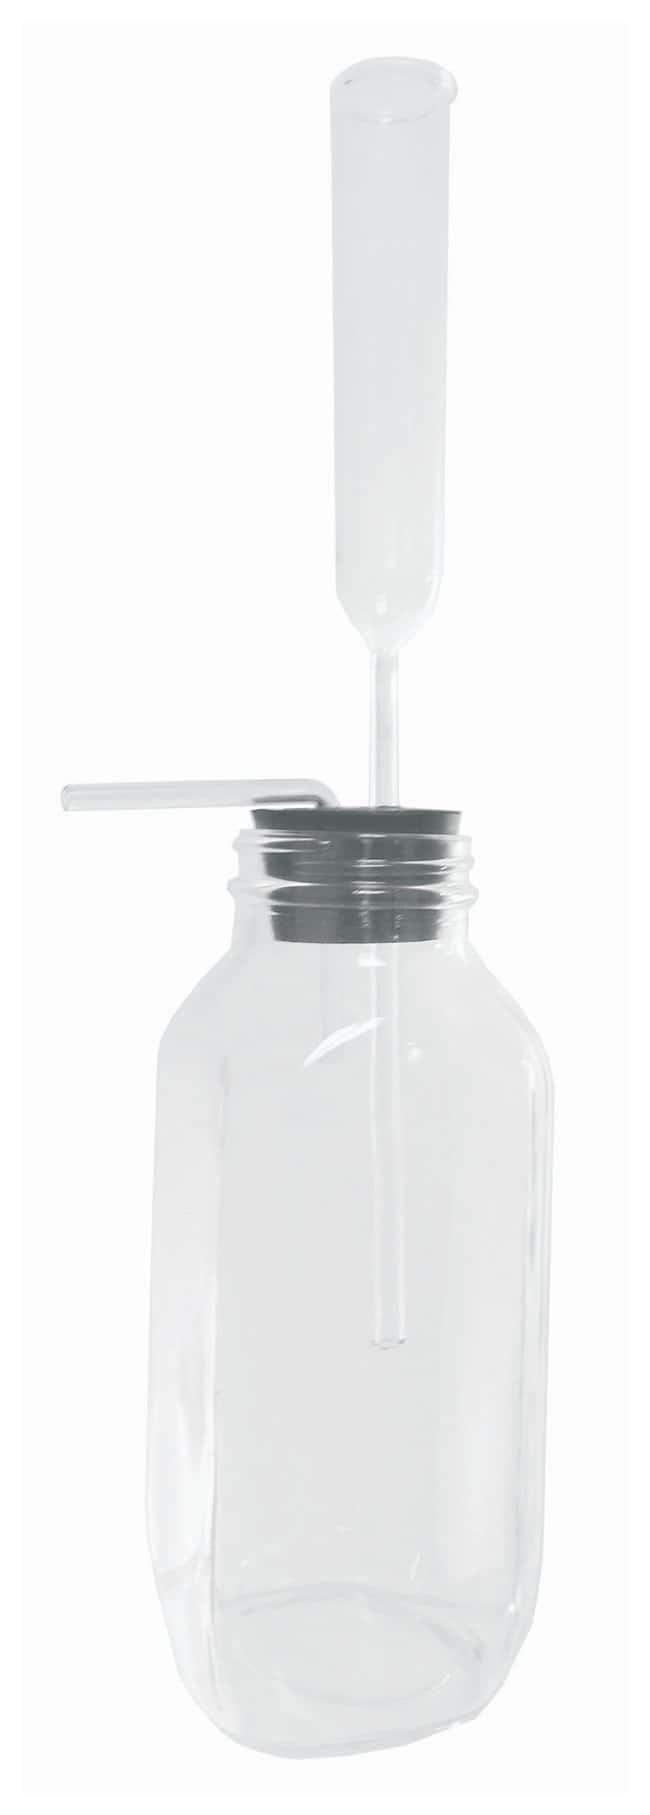 GSC Go Science CrazyGas Generating Bottles:Gases and Gas Accessories:Gas